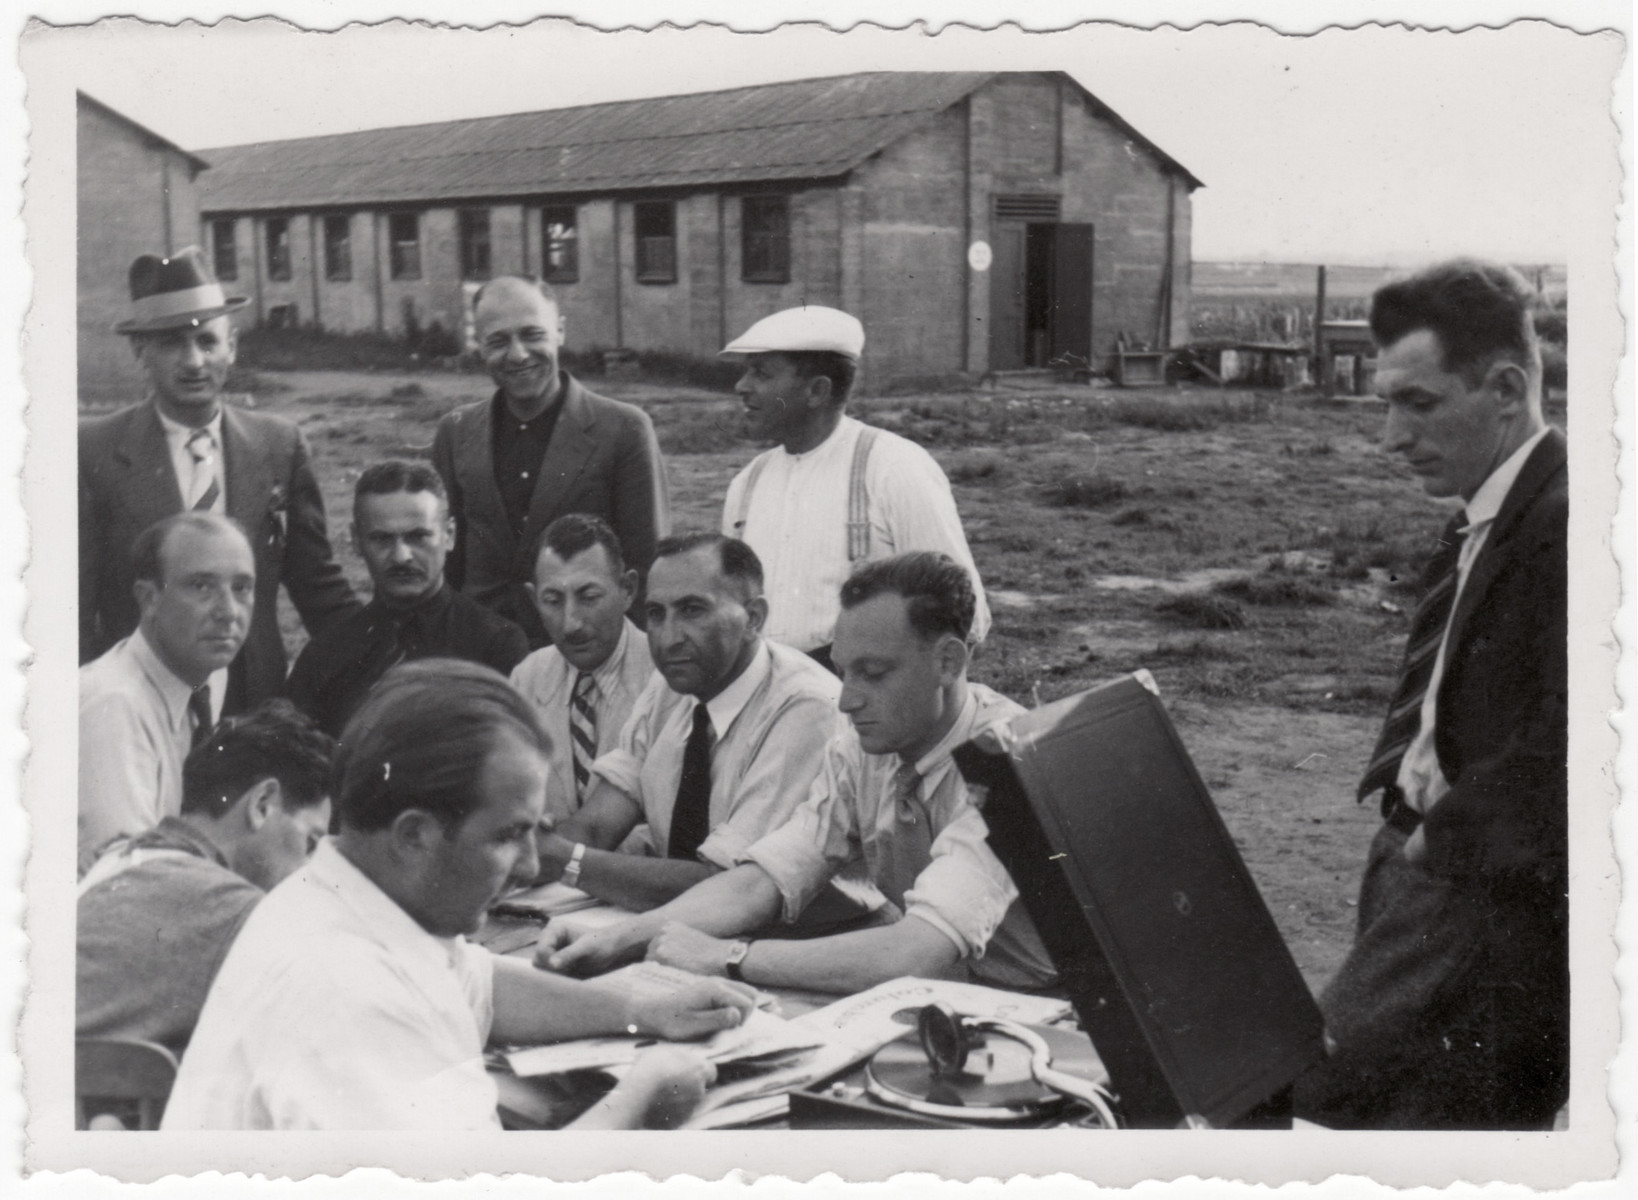 Jewish refugees gather by an open briefcase on an outdoor table at the Kitchener refugee camp.  Siegfried Kulmann is pictured in the lower left in a white short sleeve shirt taking out a record for the record player.